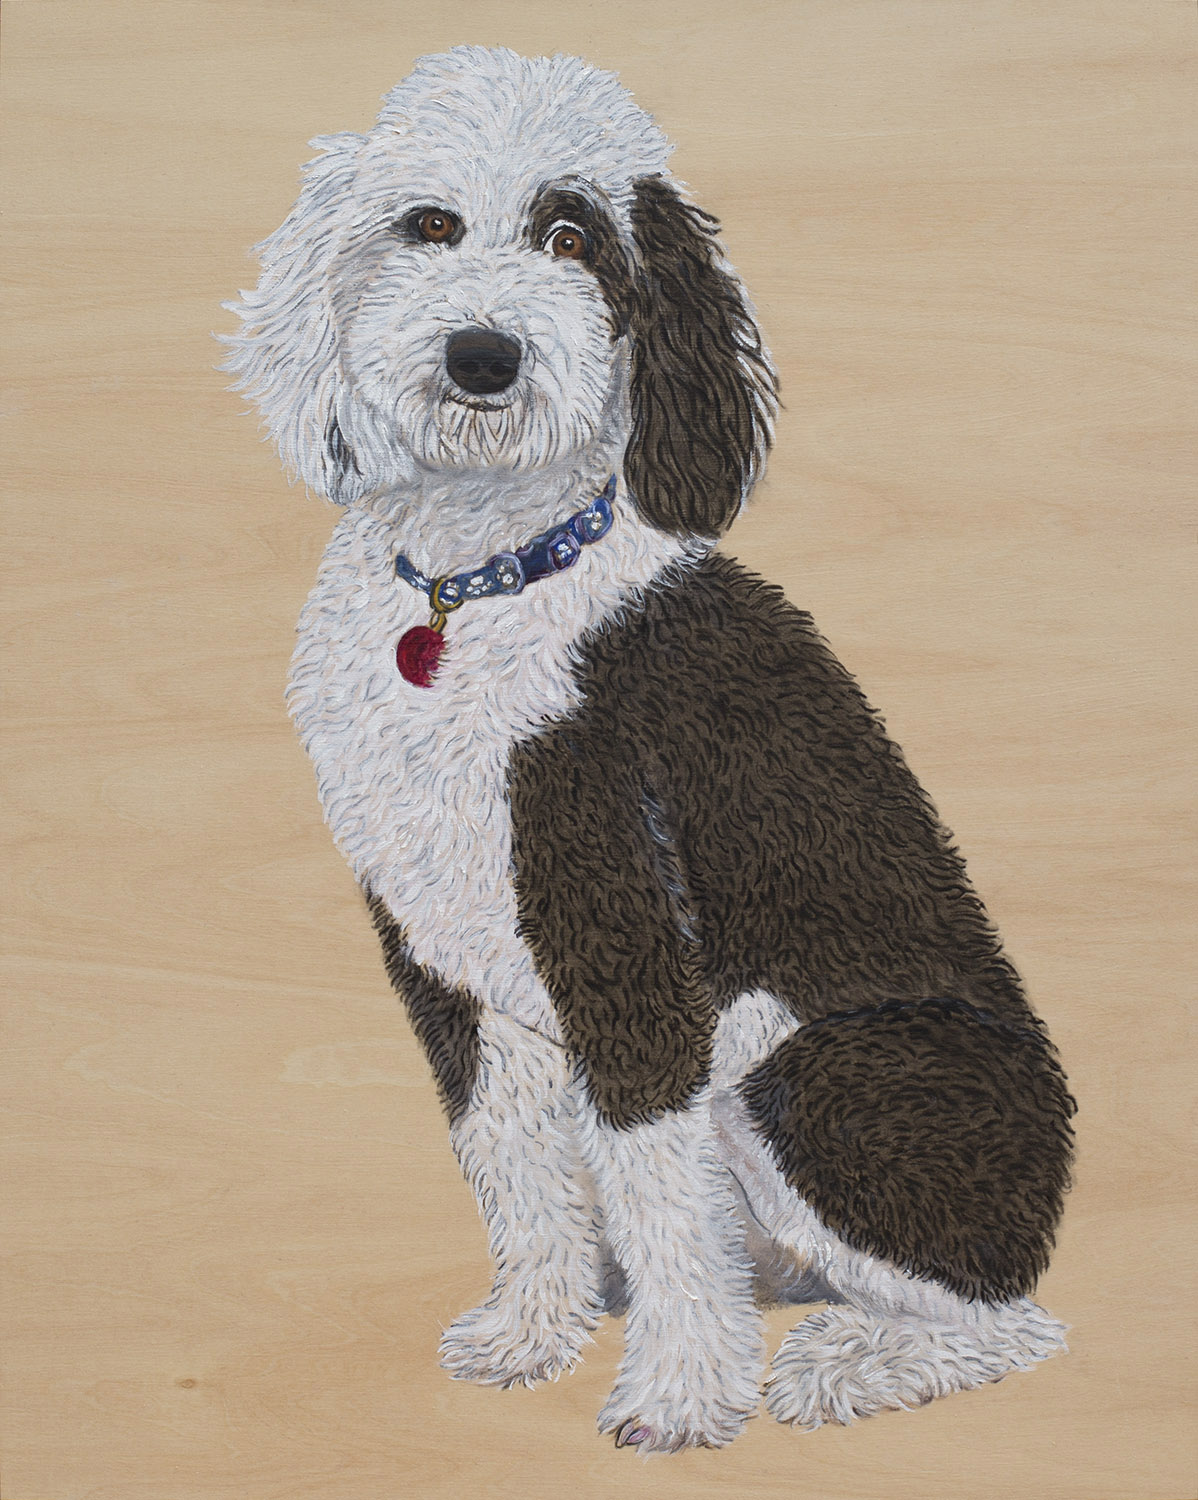 dog-portrait-on-wood-malayka-gormally.jpg